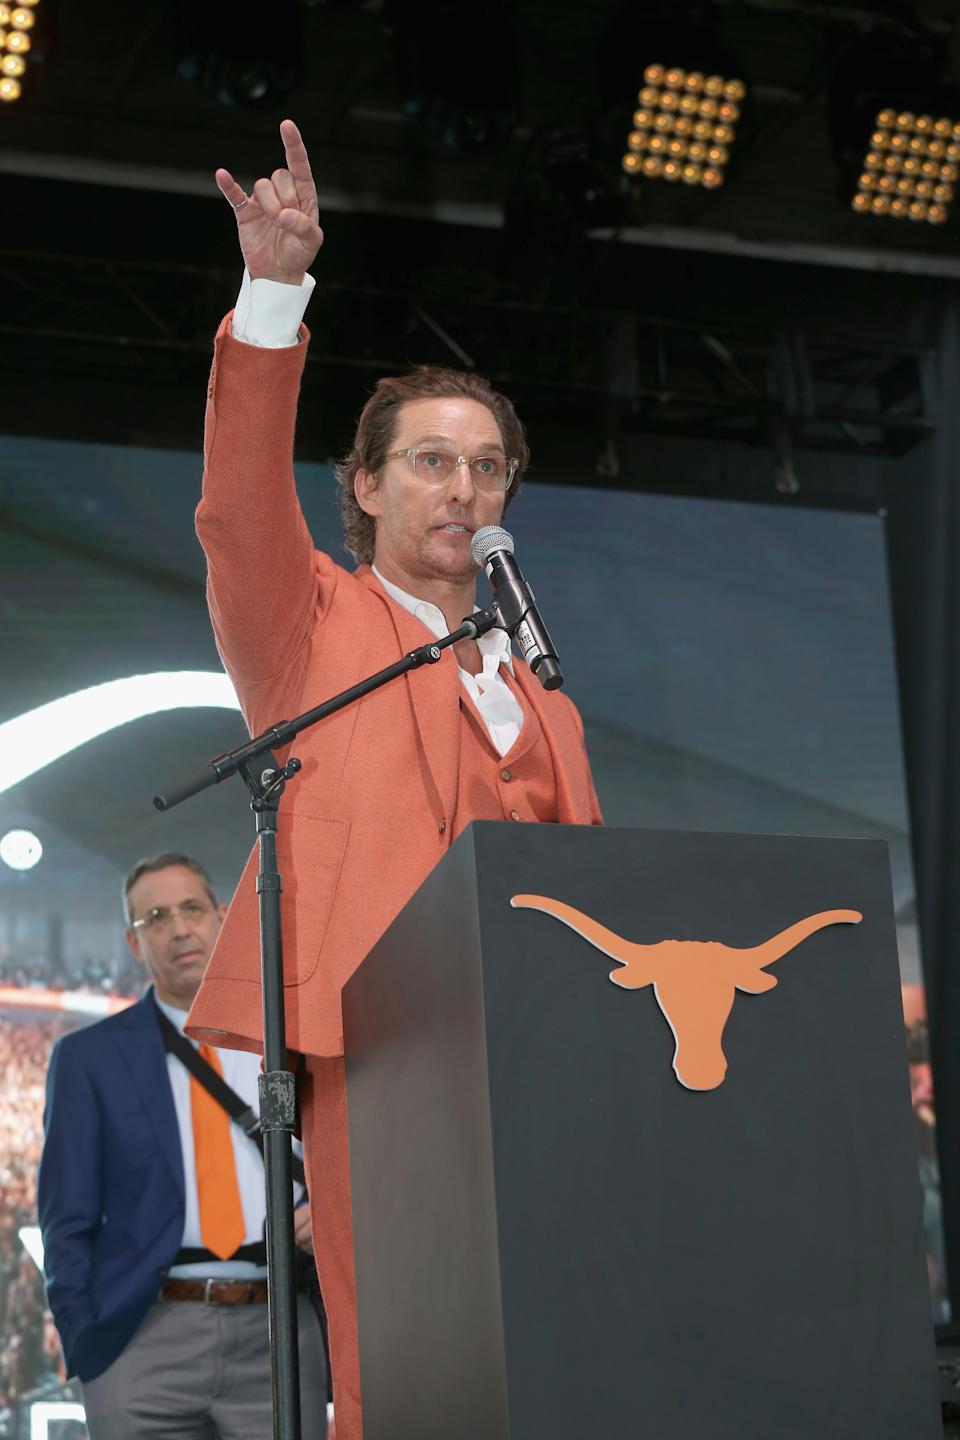 AUSTIN, TEXAS - DECEMBER 03:  University of Texas Minister of Culture Matthew McConaughey attends the groundbreaking ceremony for the new University of Texas event facility, the